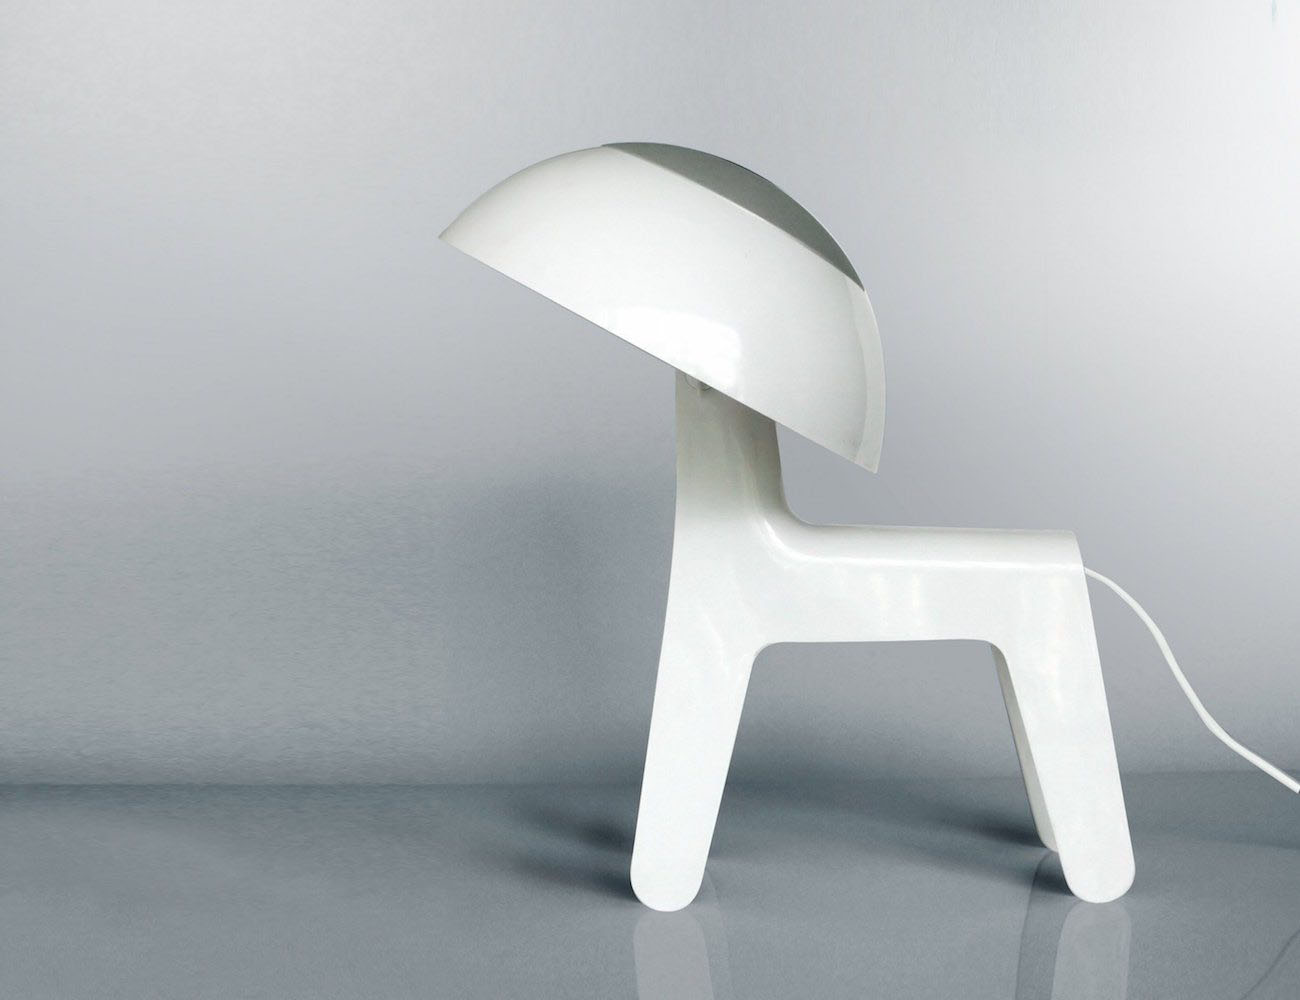 Dog Lamp by Propaganda